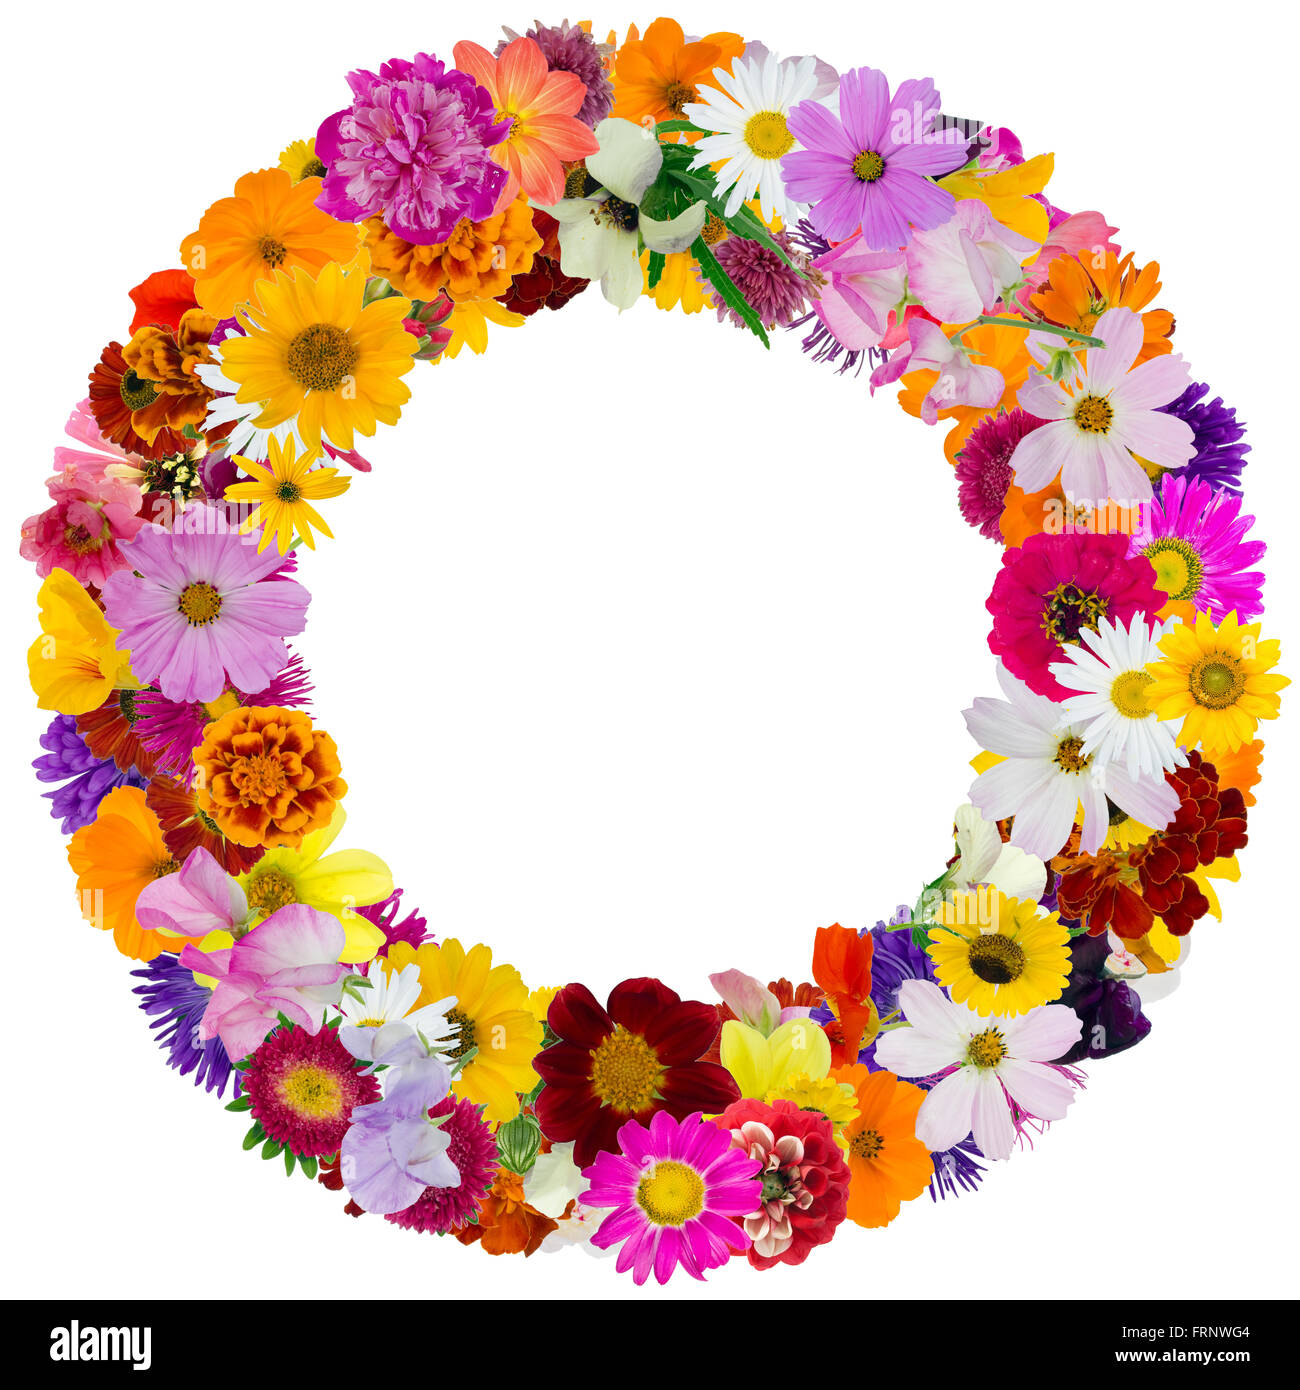 Round floral summer photo frame made from simple vivid fresh flowers isolated abstract collage